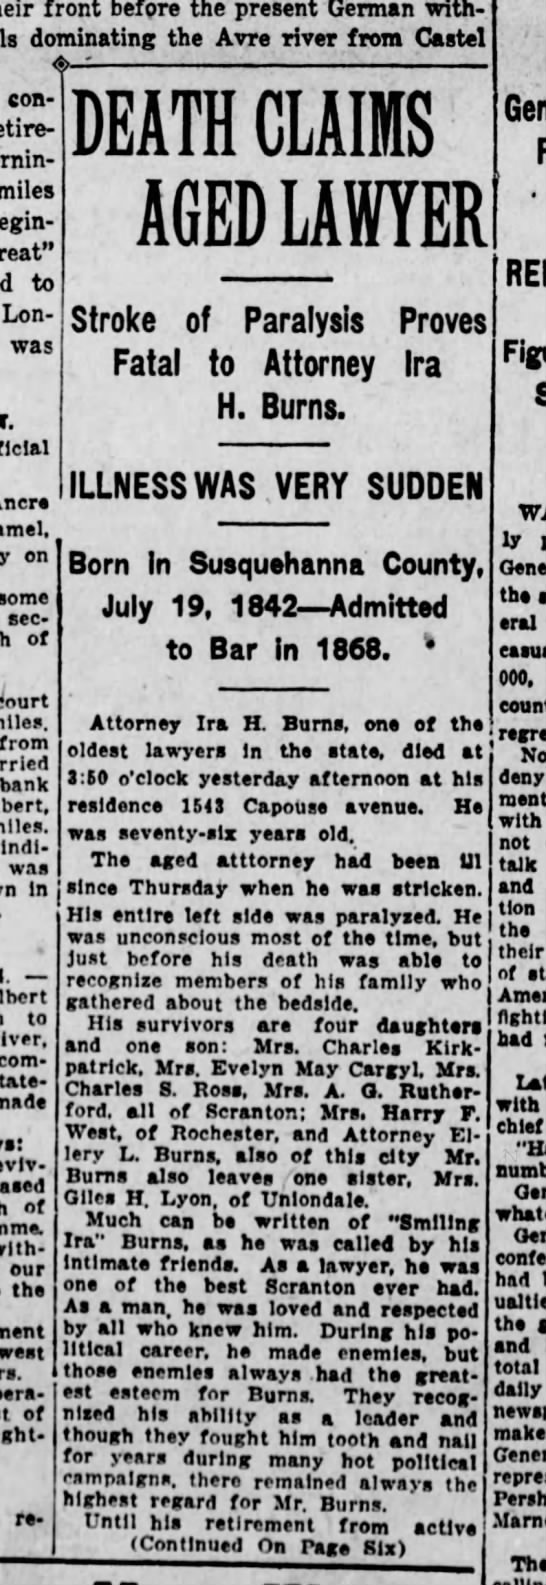 Ira Burns Obituary Scr Rep Aug 5 1918 pg 1 -